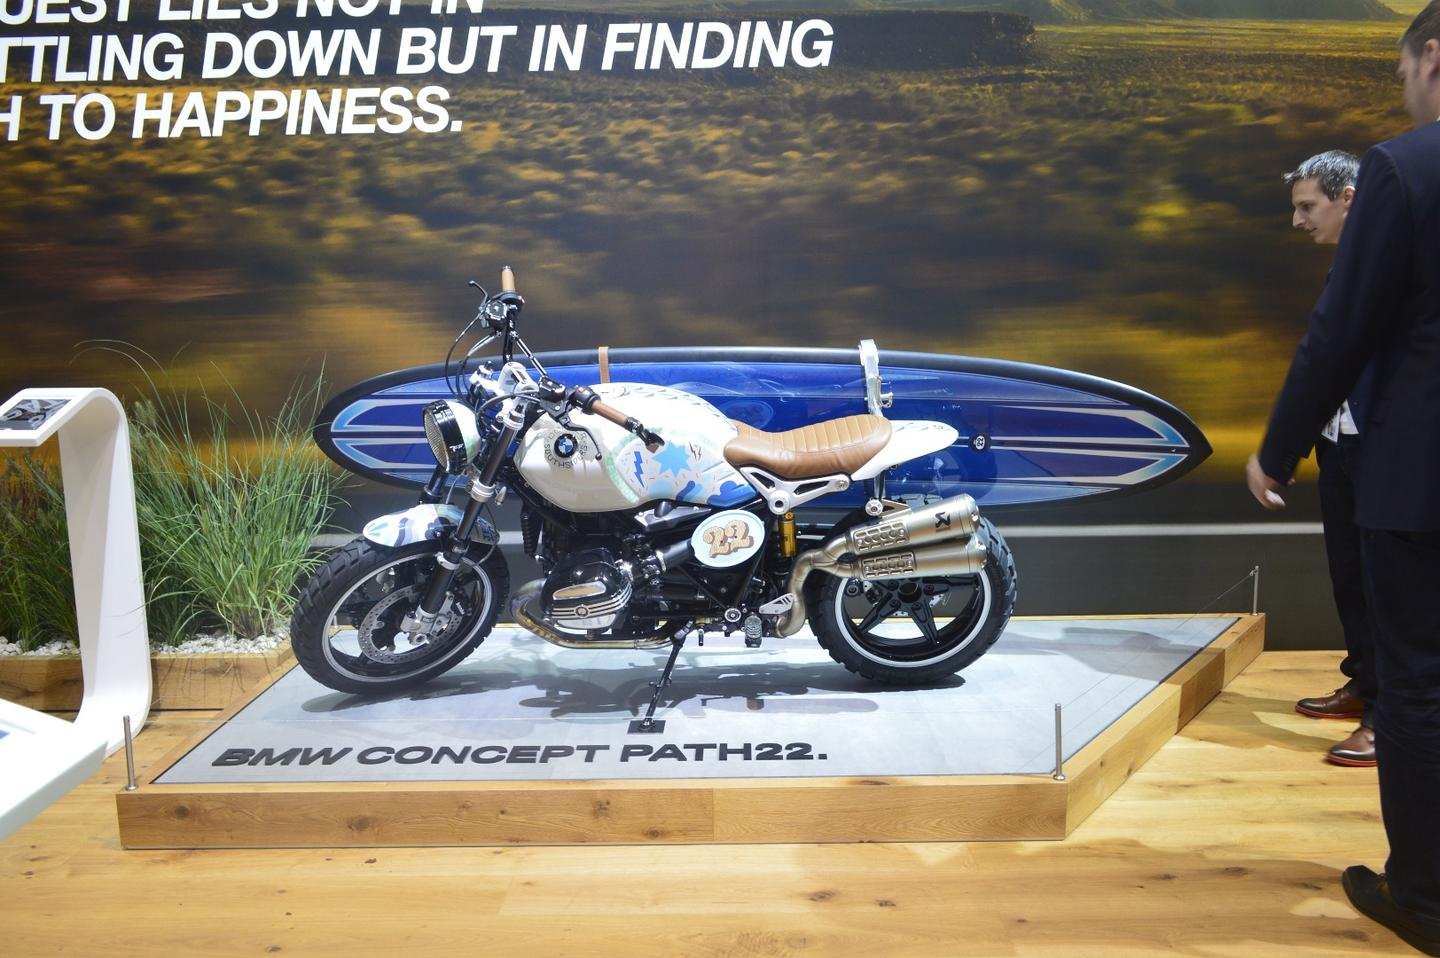 Exhibited in Frankfurt, the BMW Concept Path 22 is a potential teaser for a production model to come soon